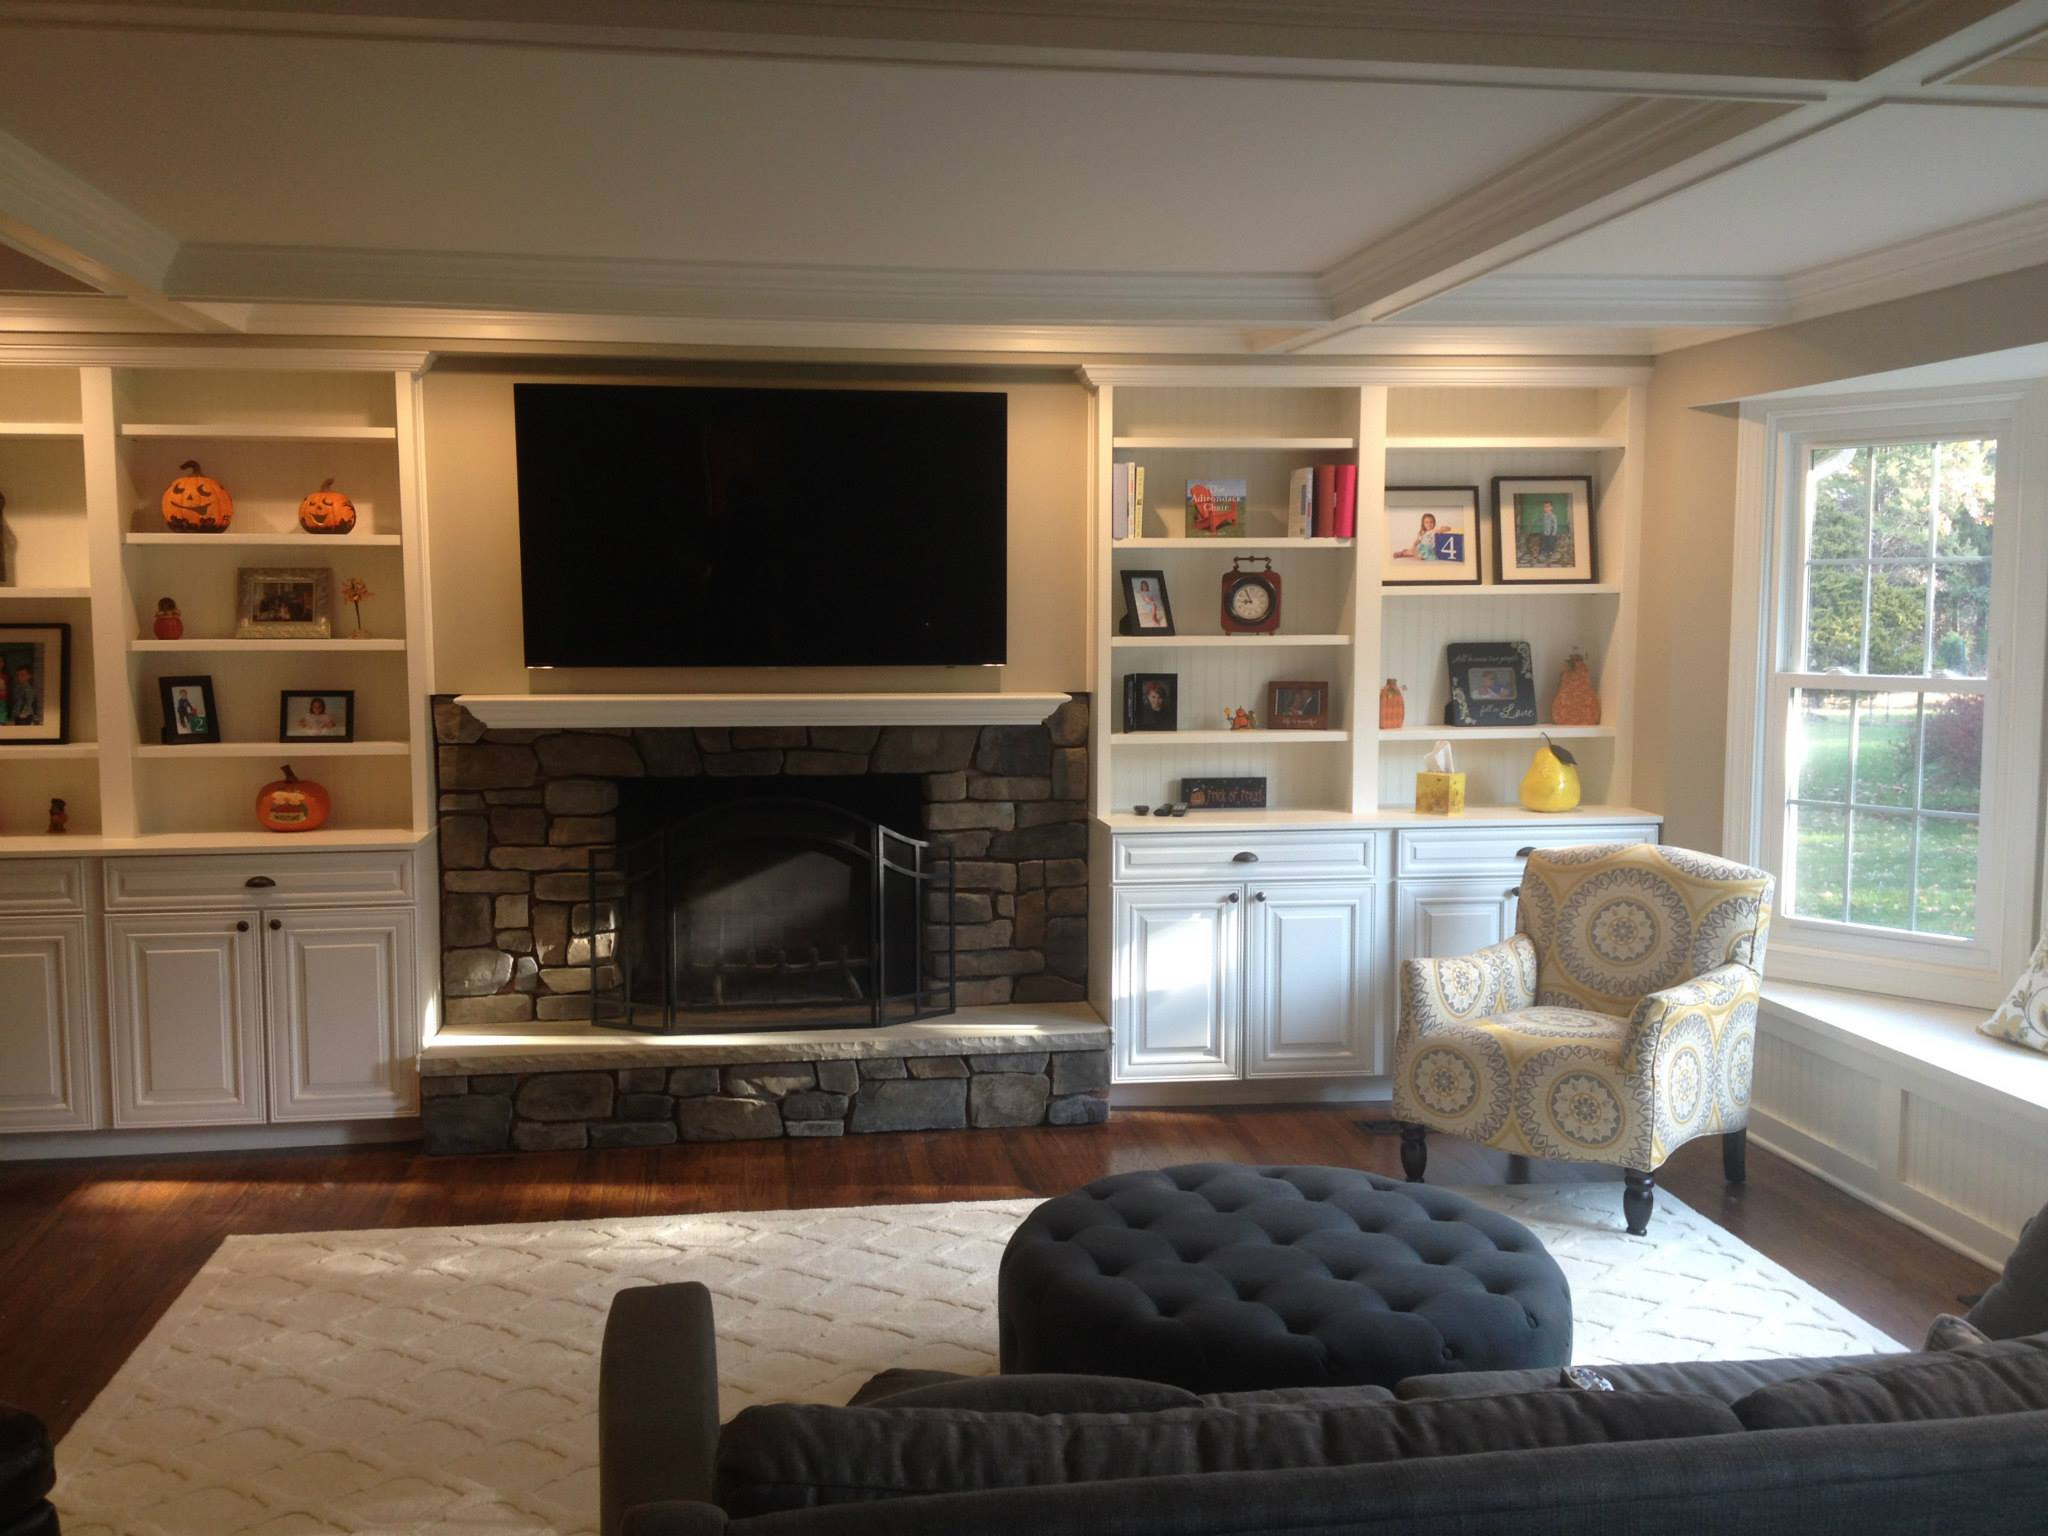 Bridgewater NJ Built In Cabinetry Around Fireplace  Design Build Planners